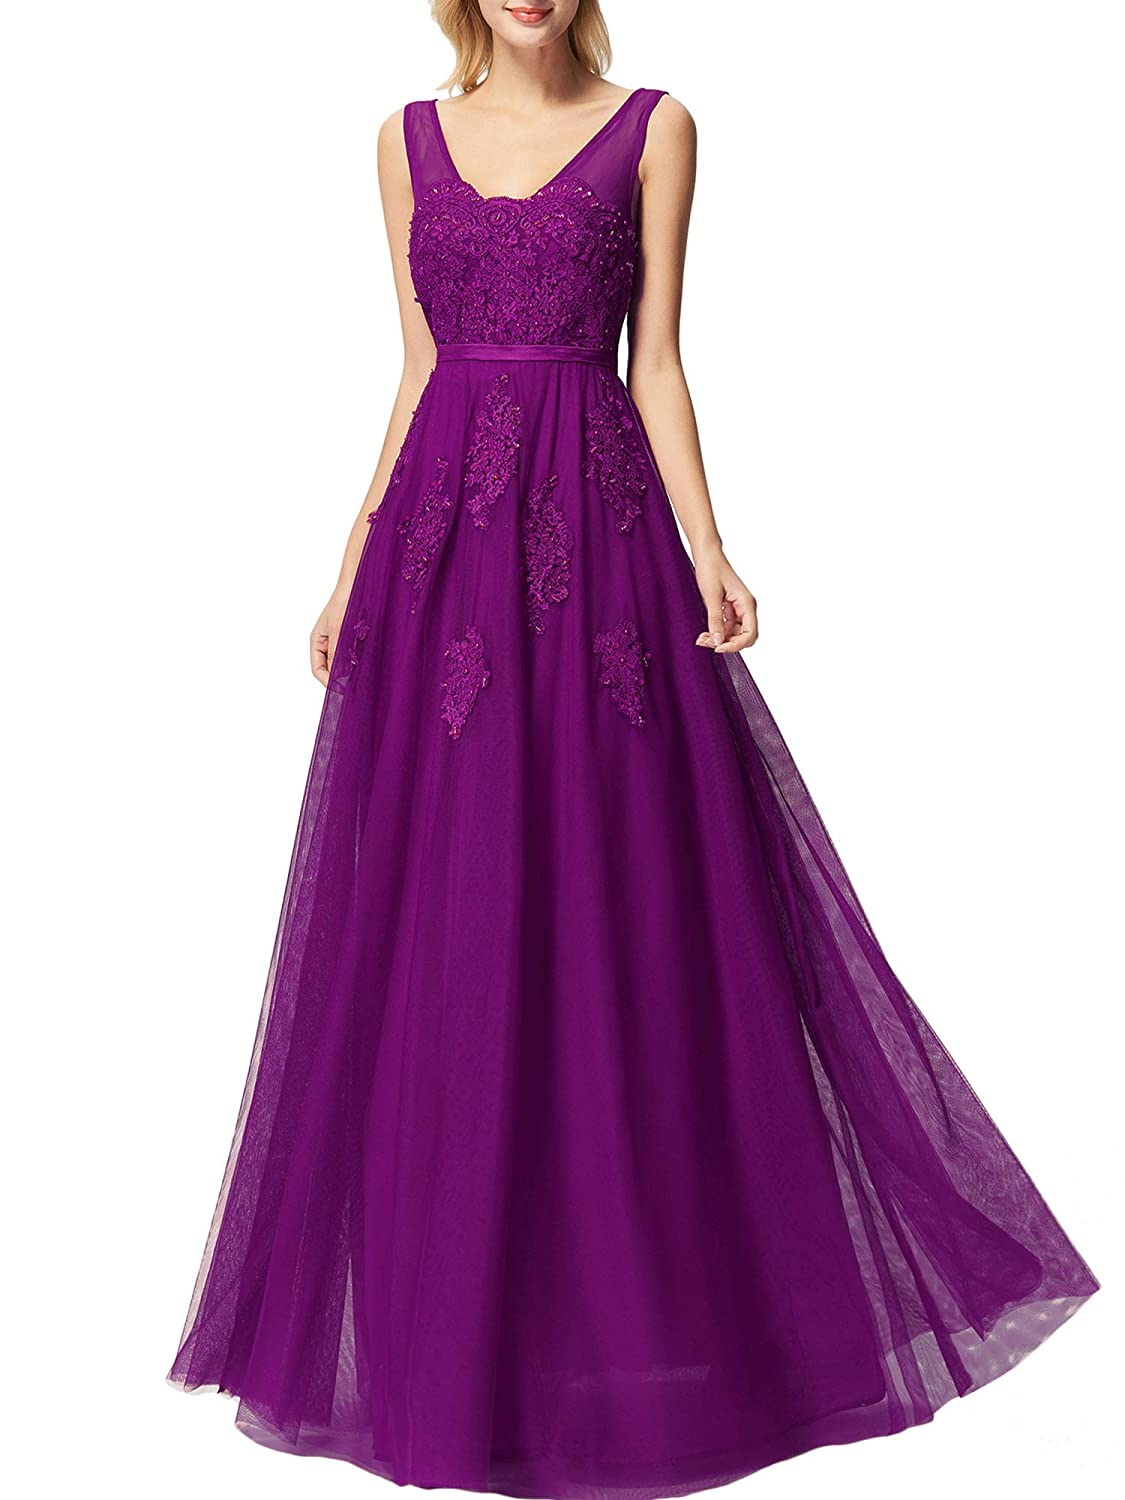 Purple Promworld Women's Lace Applique Prom Dress Tulle Double V Neck Evening Gowns Formal Dresses